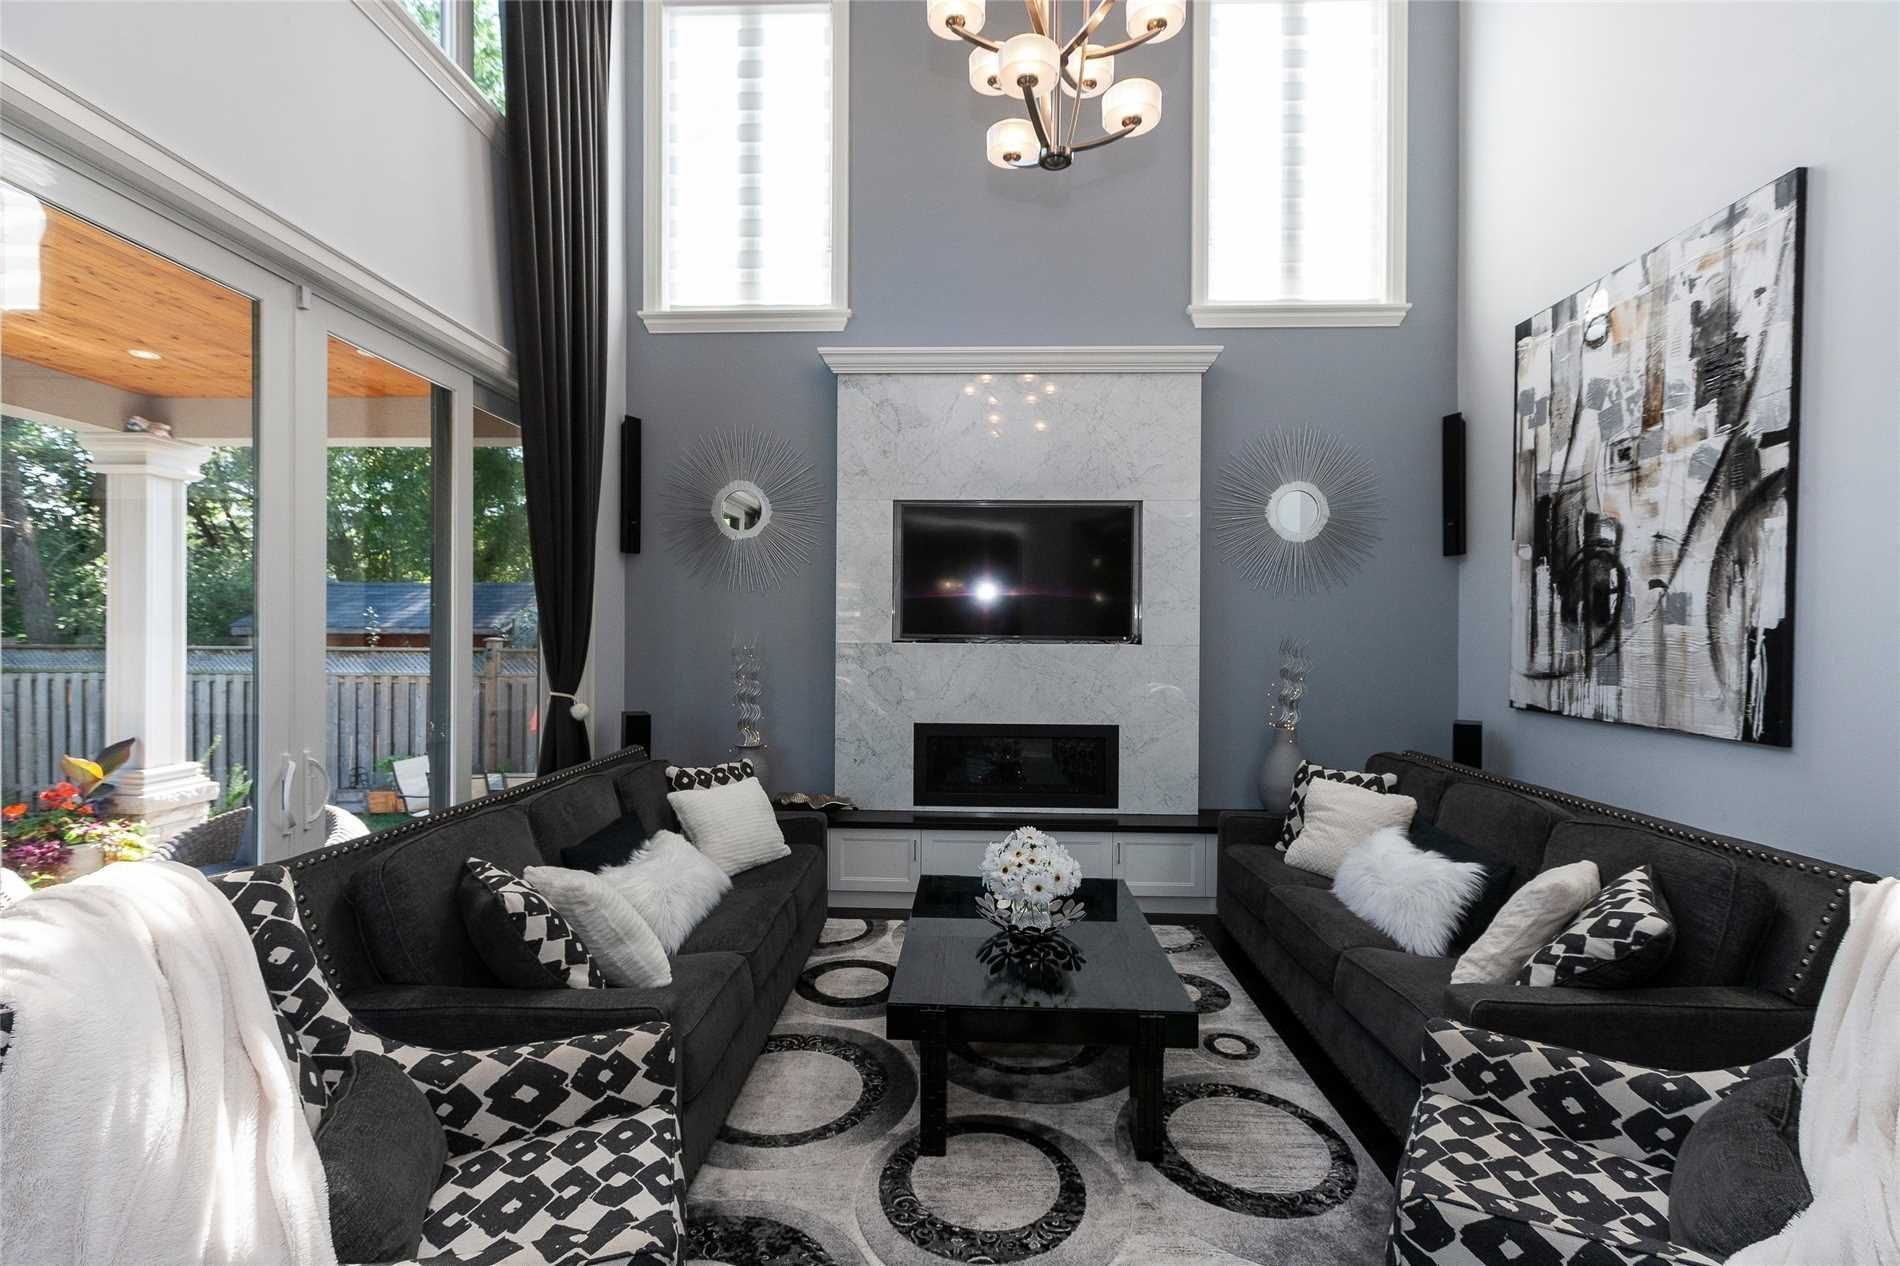 475 Scarsdale Crescent for sale